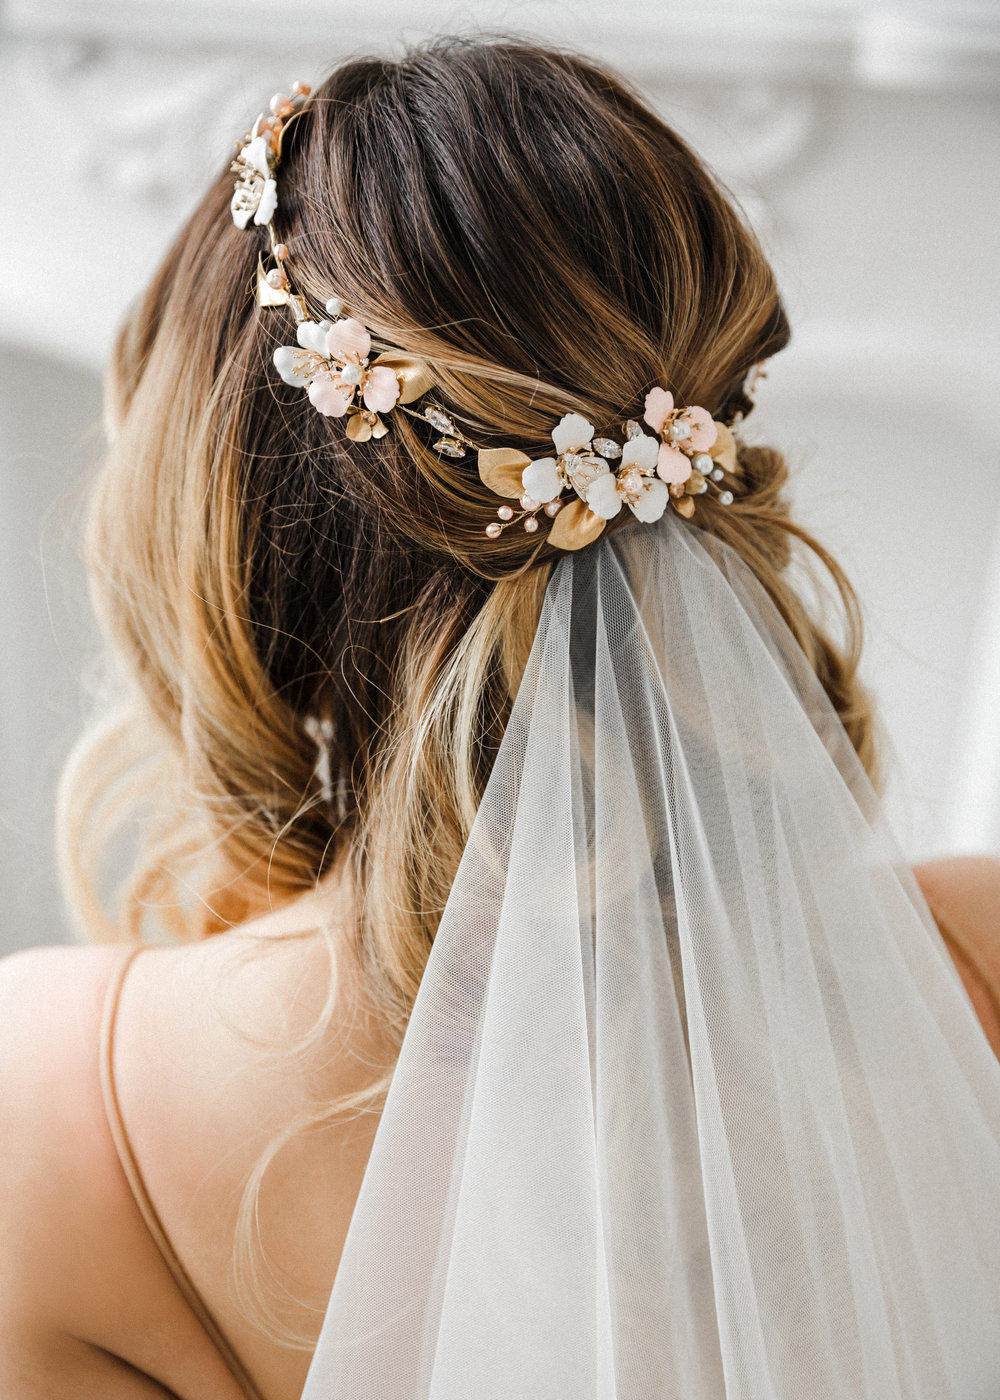 Find your perfect Bridal Headpiece - Handmade in SwitzerlandUnique DesignPossibility to Rush OrdersFree Shipping WorldwideCustomisable OrdersFast response on your questions